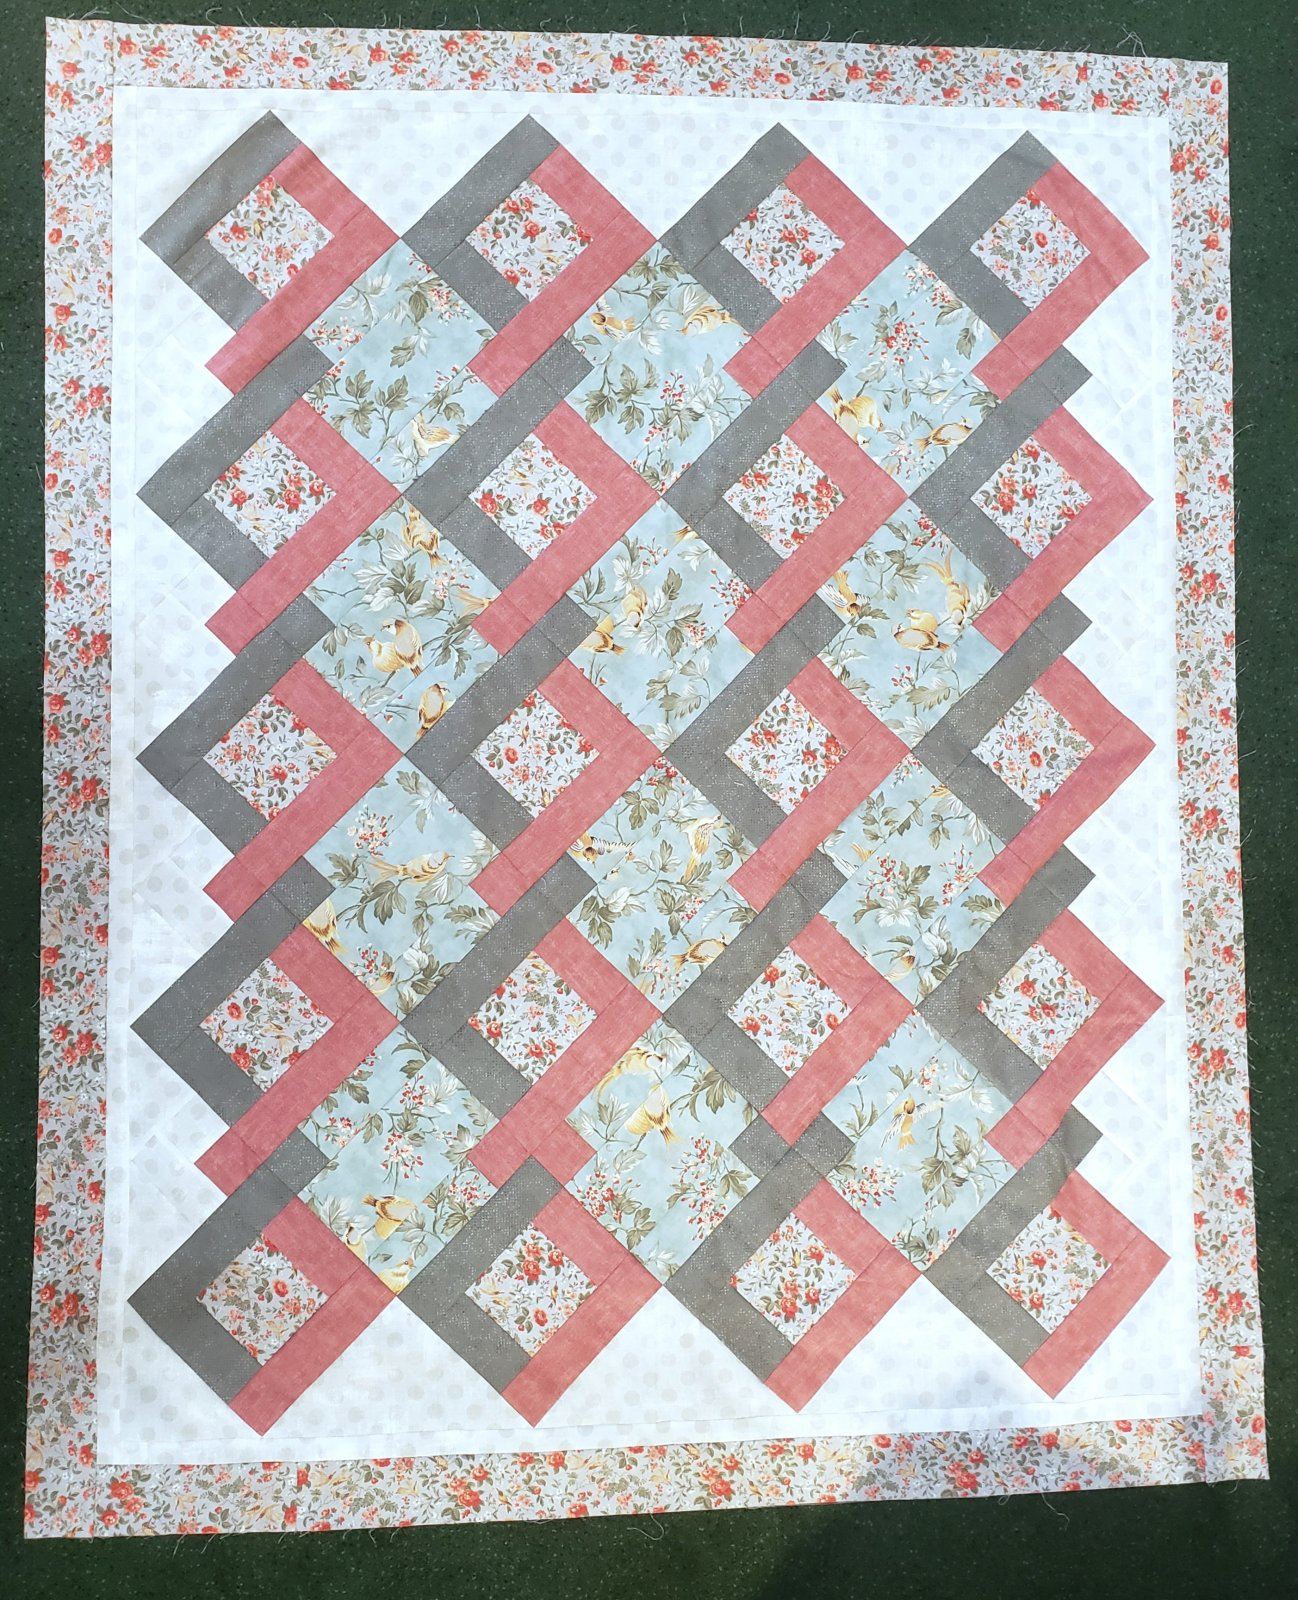 5 Yard Quilt Kit - Daybreak